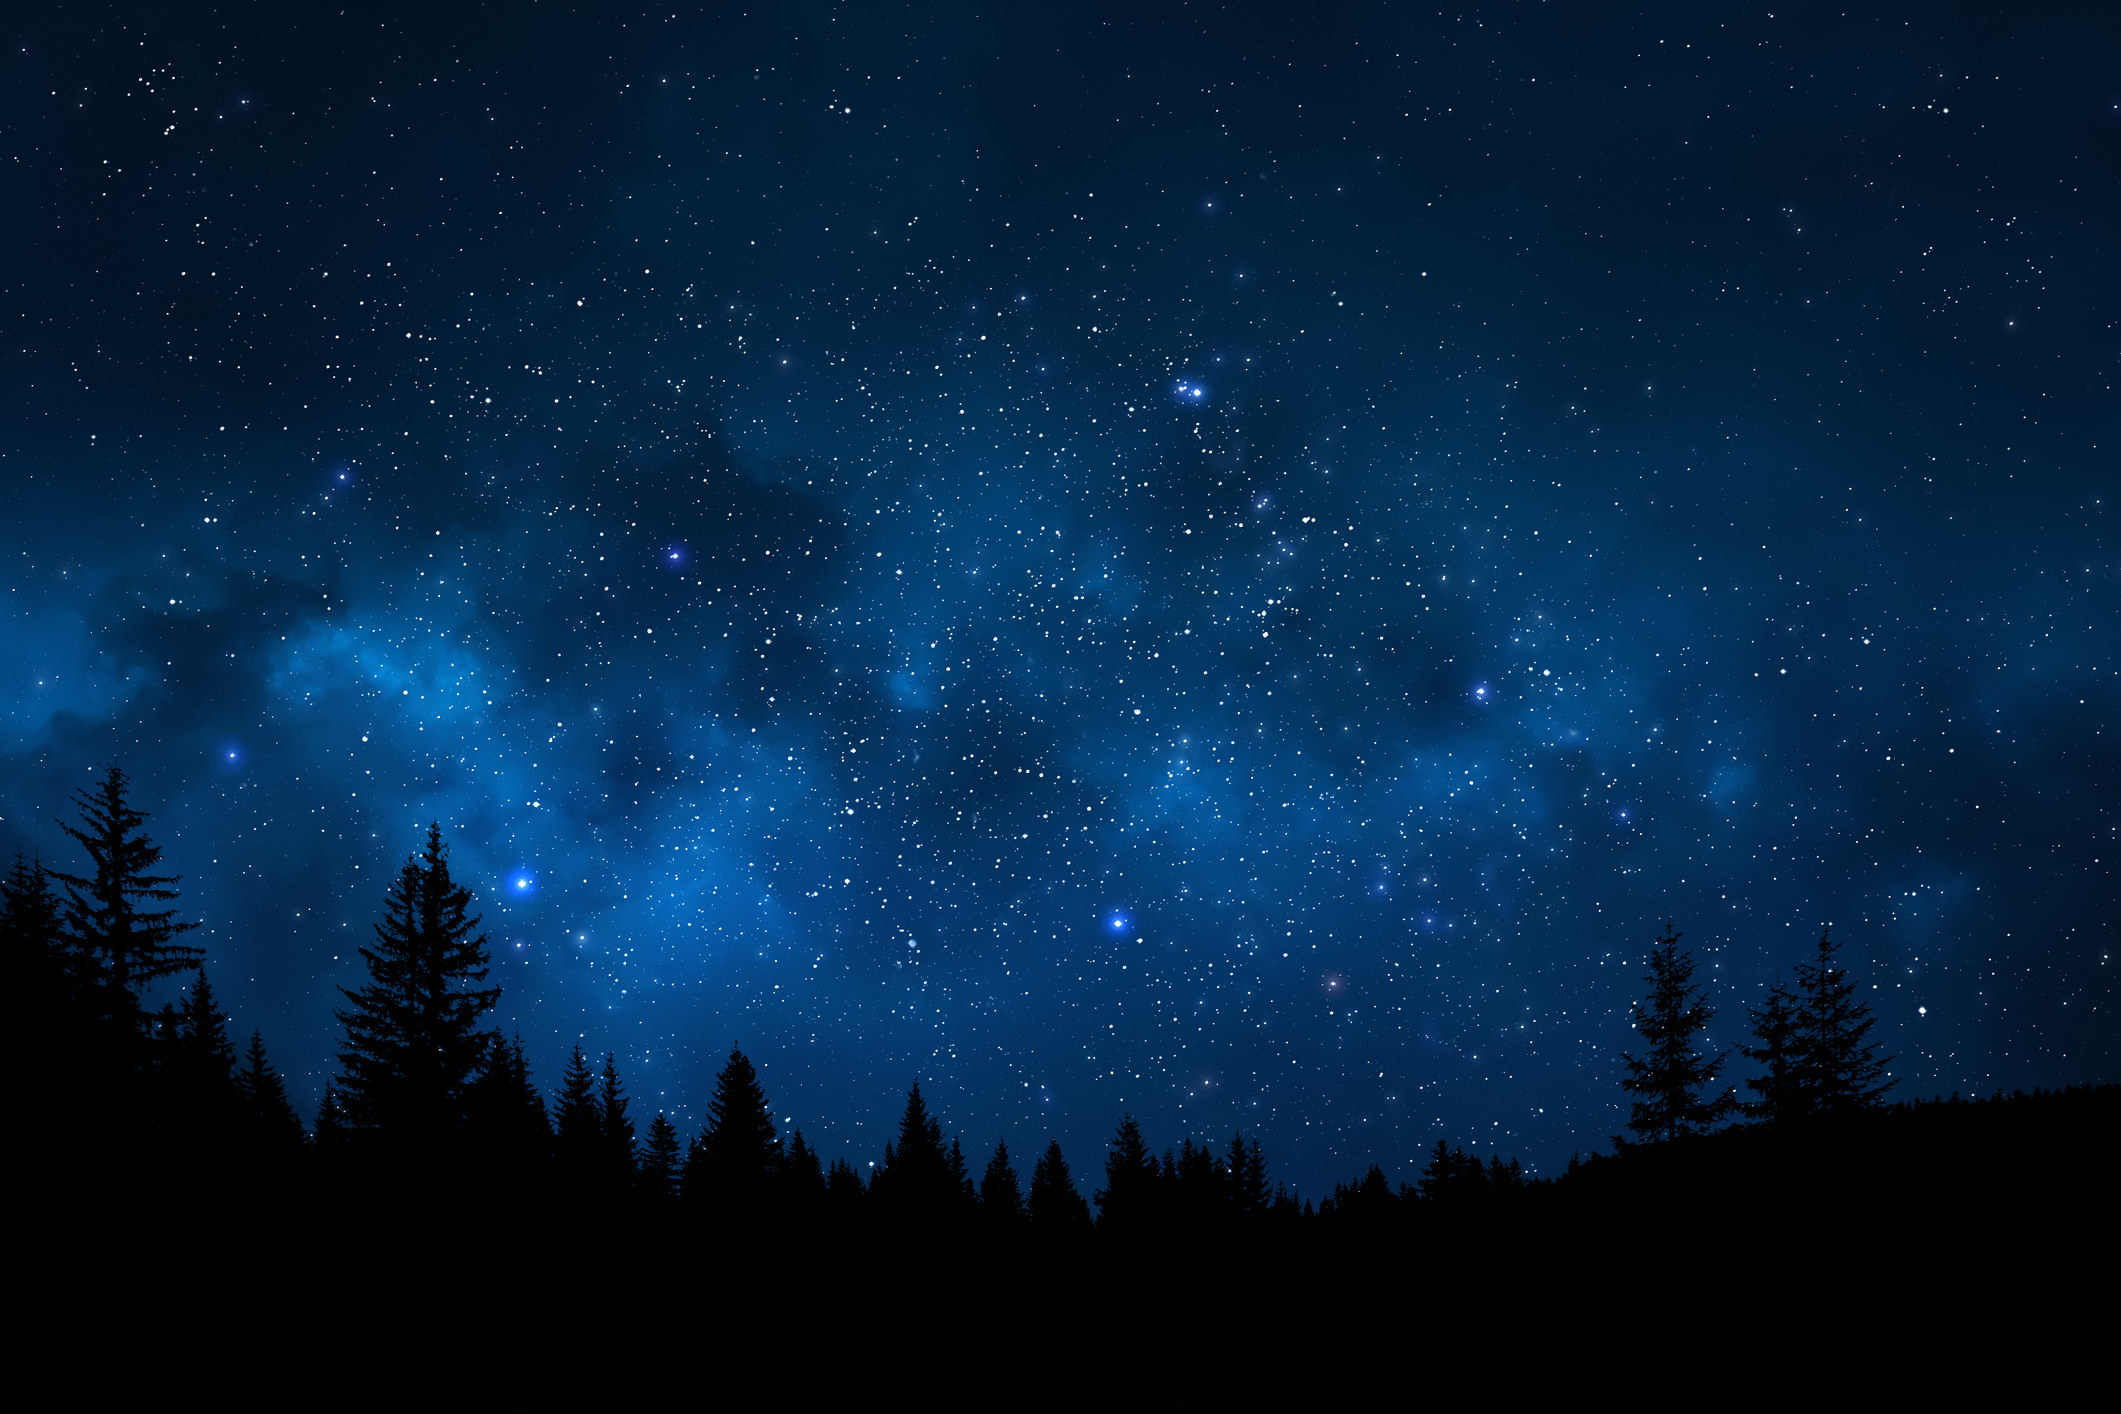 A starry blue night sky with the outline of large fir trees at the bottom